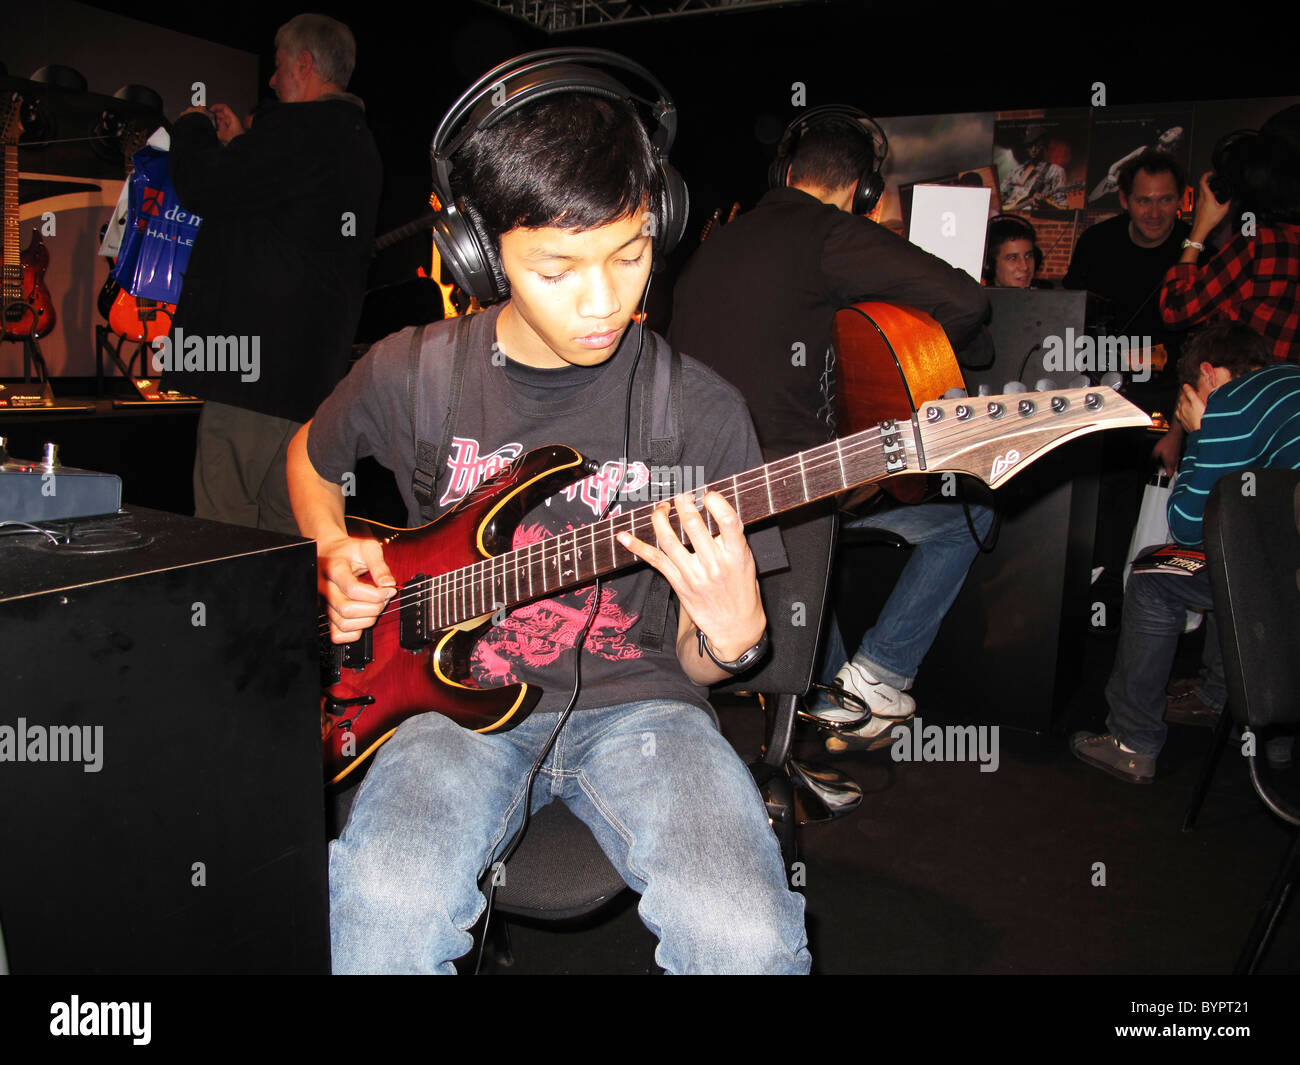 boy play with lag electric guitar the music show music and stock photo 34307897 alamy. Black Bedroom Furniture Sets. Home Design Ideas